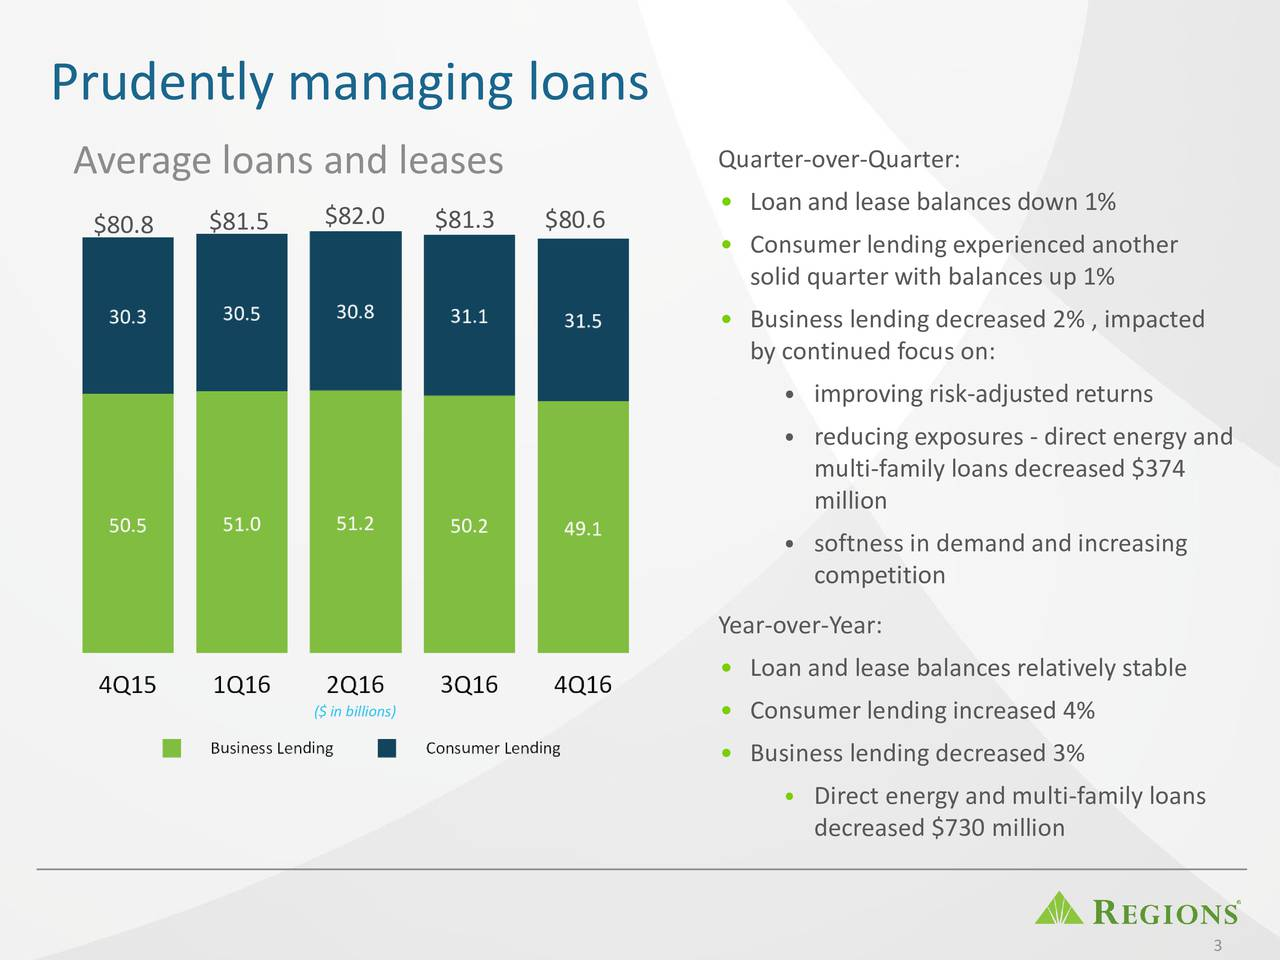 Average loans and leases Quarter-over-Quarter: Loan and lease balances down 1% $80.8 $81.5 $82.0 $81.3 $80.6 Consumer lending experienced another solid quarter with balances up 1% Business lending decreased 2% , impacted by continued focus on: improving risk-adjusted returns reducing exposures - direct energy and multi-family loans decreased $374 million softness in demand and increasing competition Year-over-Year: Loan and lease balances relatively stable ($ in billions)  Consumer lending increased 4% Business lending decreased 3% Direct energy and multi-family loans decreased $730 million